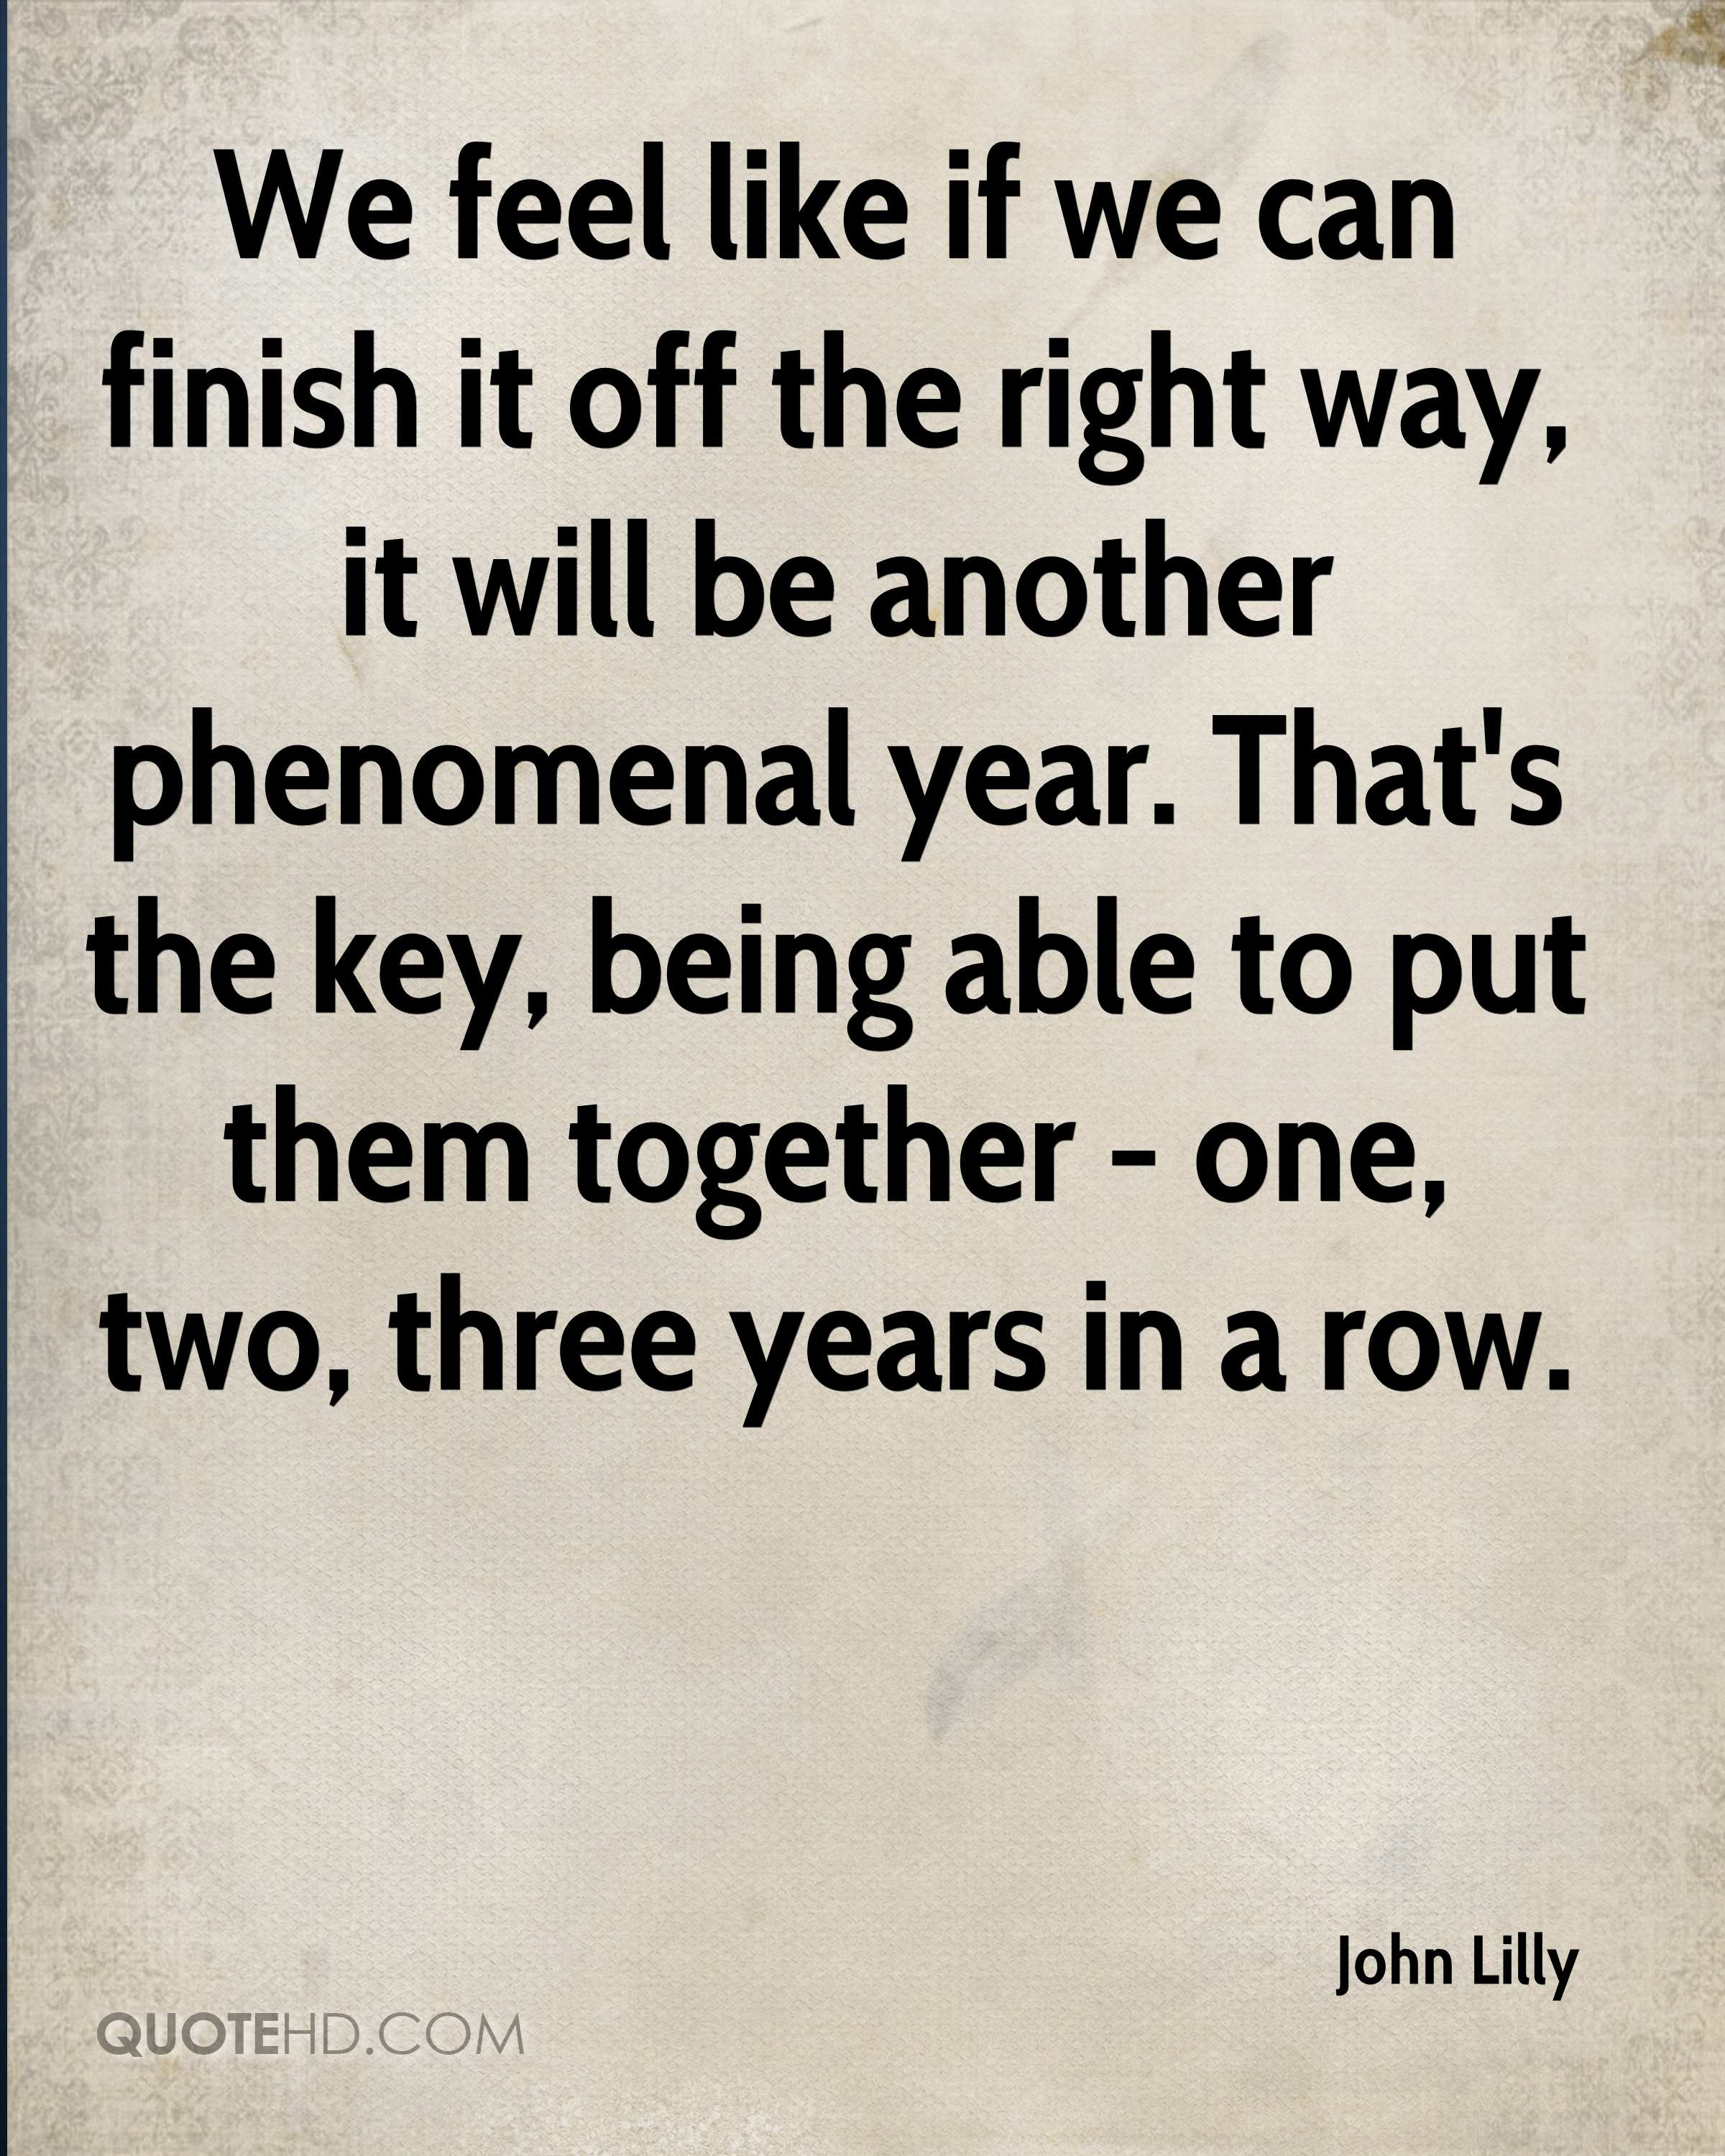 We feel like if we can finish it off the right way, it will be another phenomenal year. That's the key, being able to put them together - one, two, three years in a row.